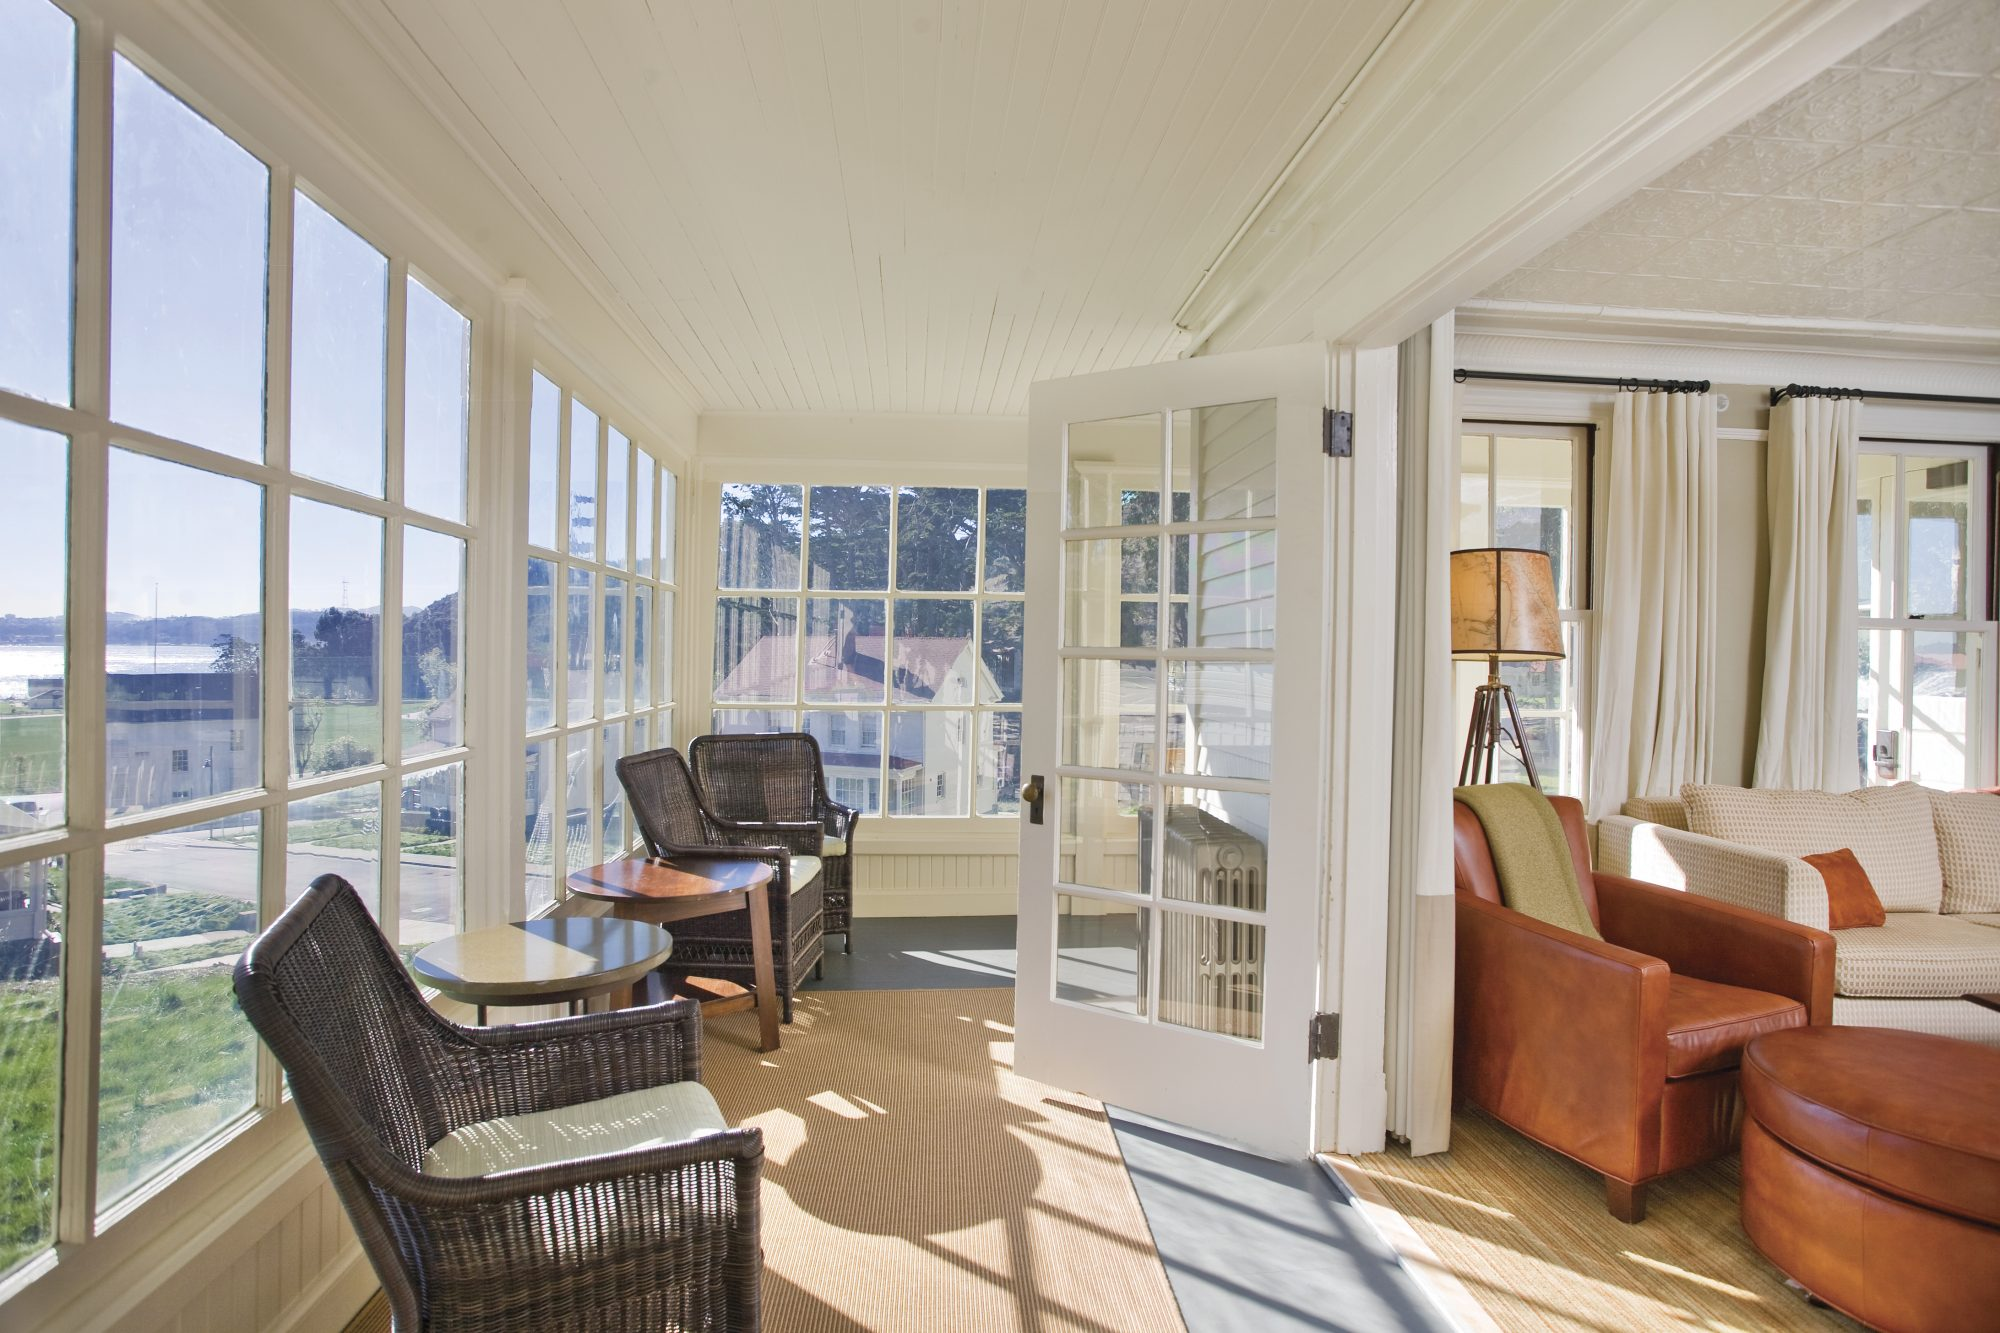 No. 9 Cavallo Point Lodge in Sausalito, California